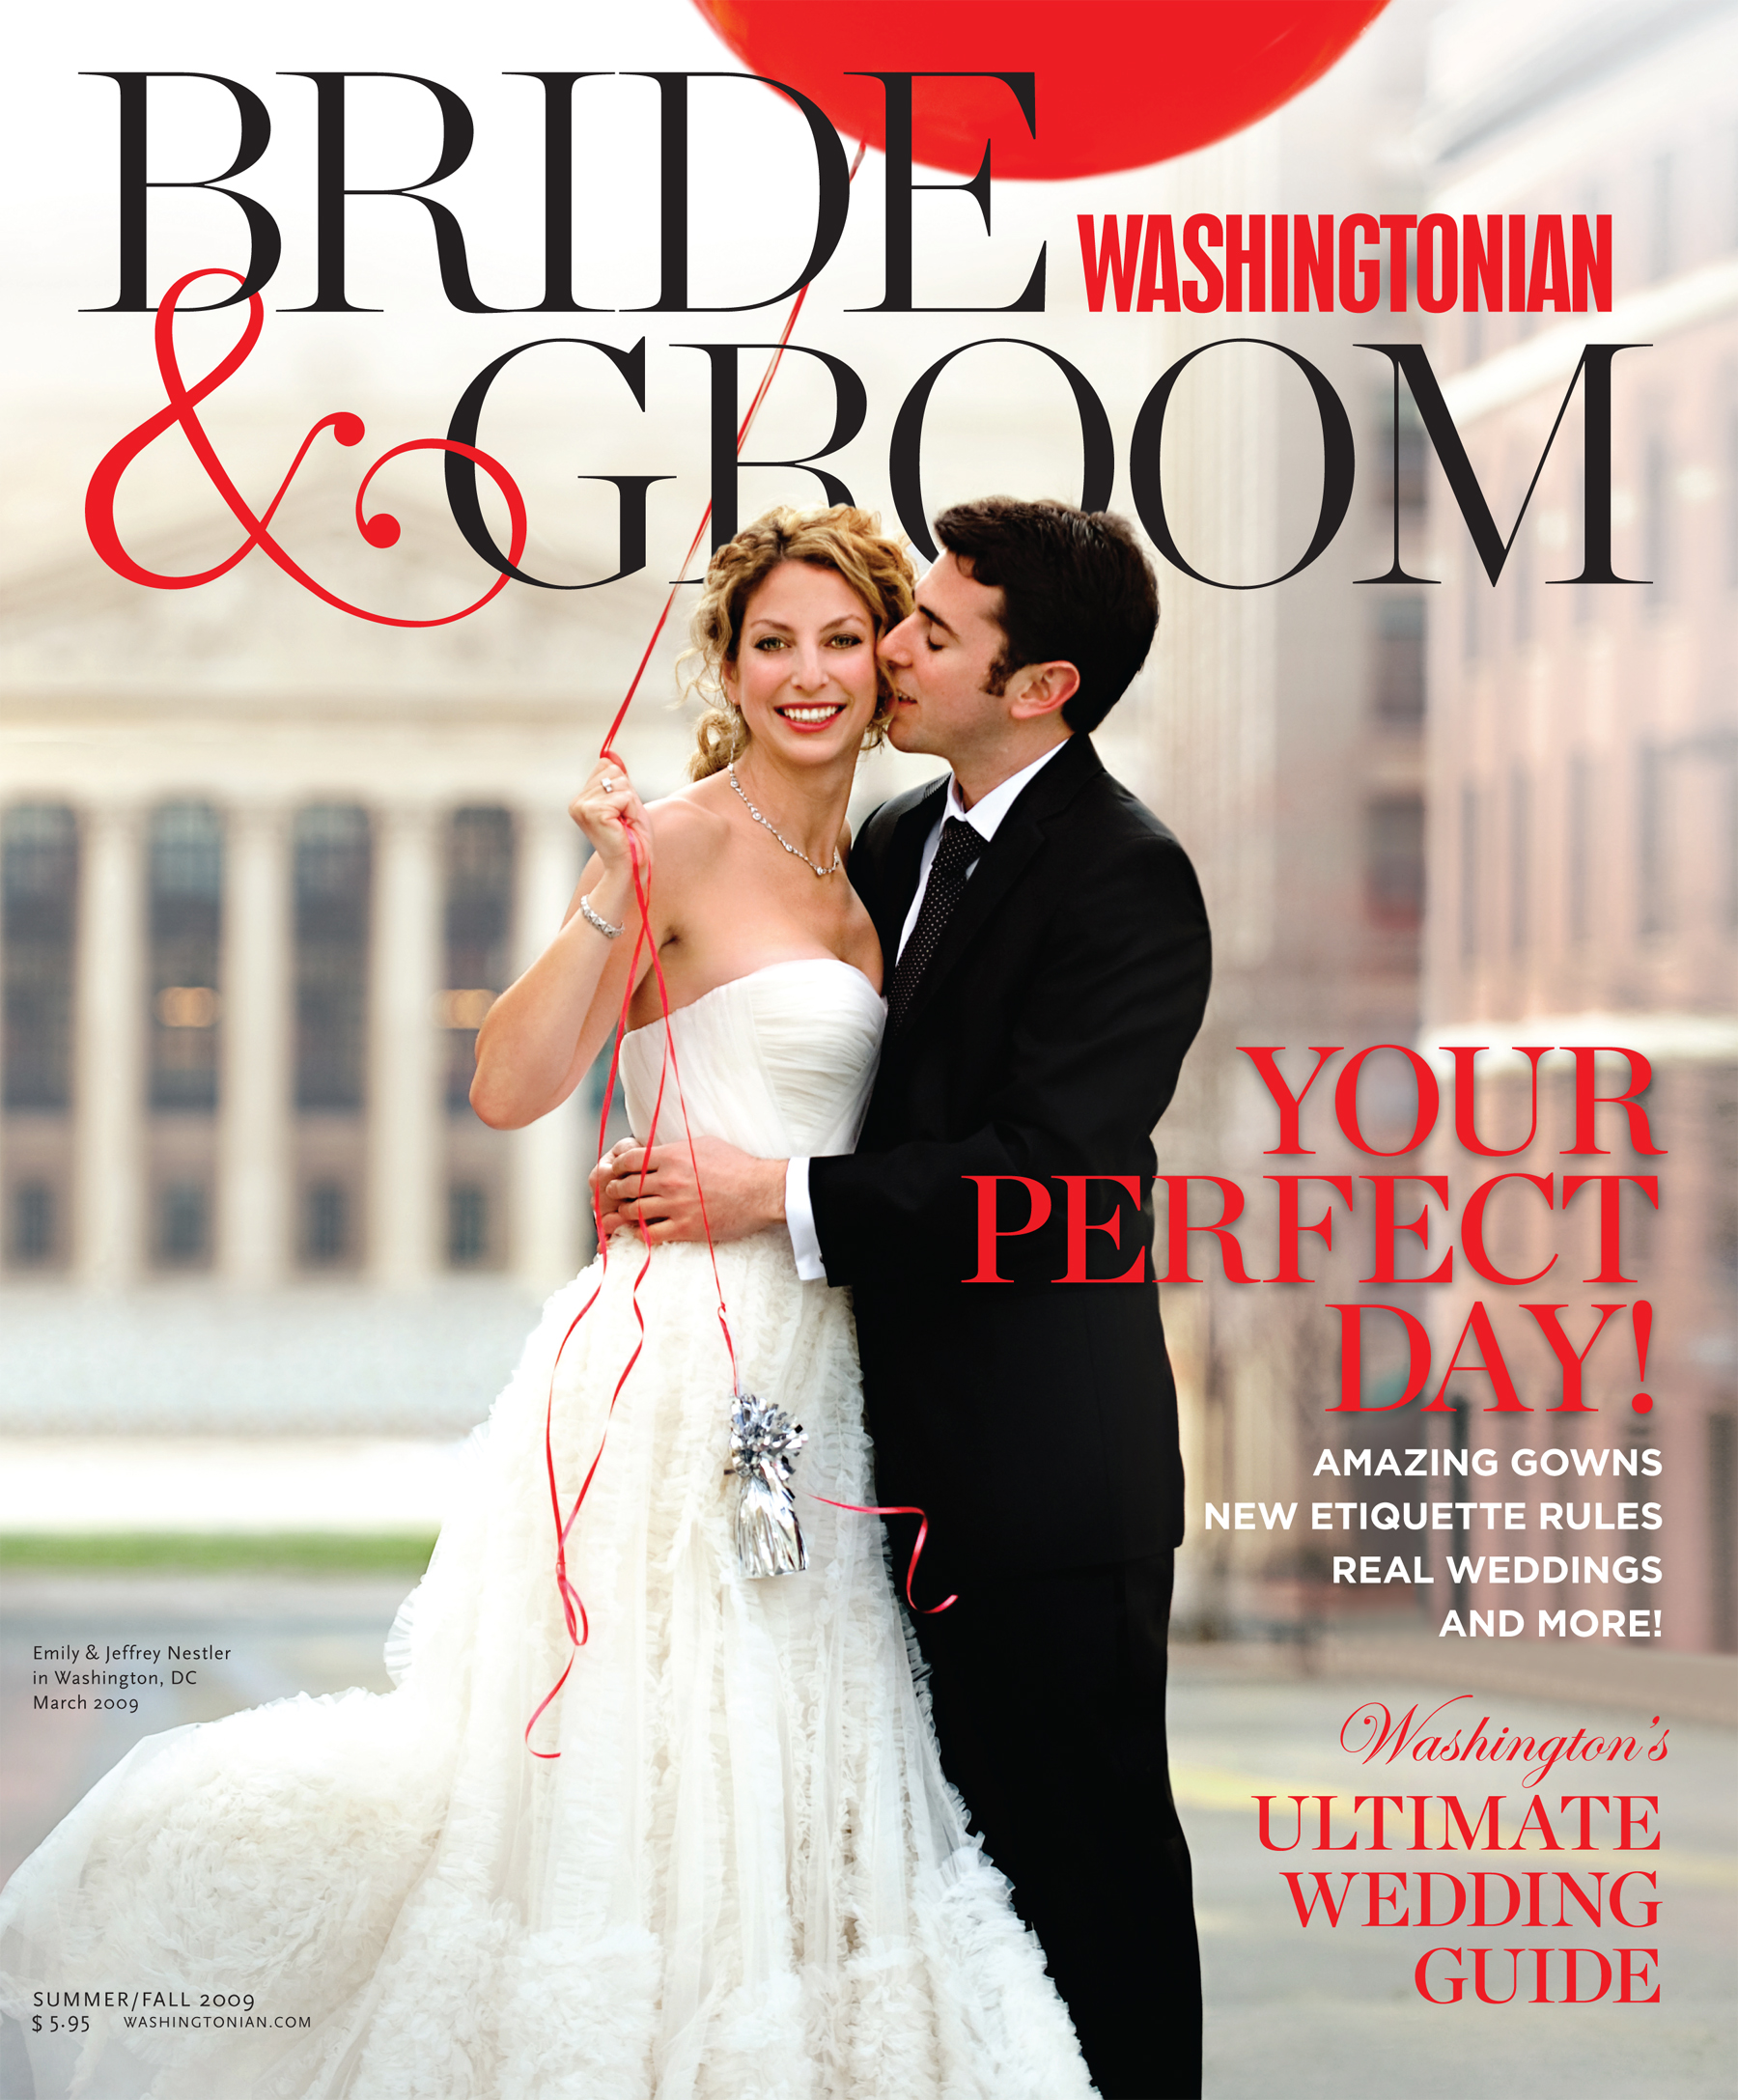 Event Accomplished in Washingtonian Bride and Groom magazine